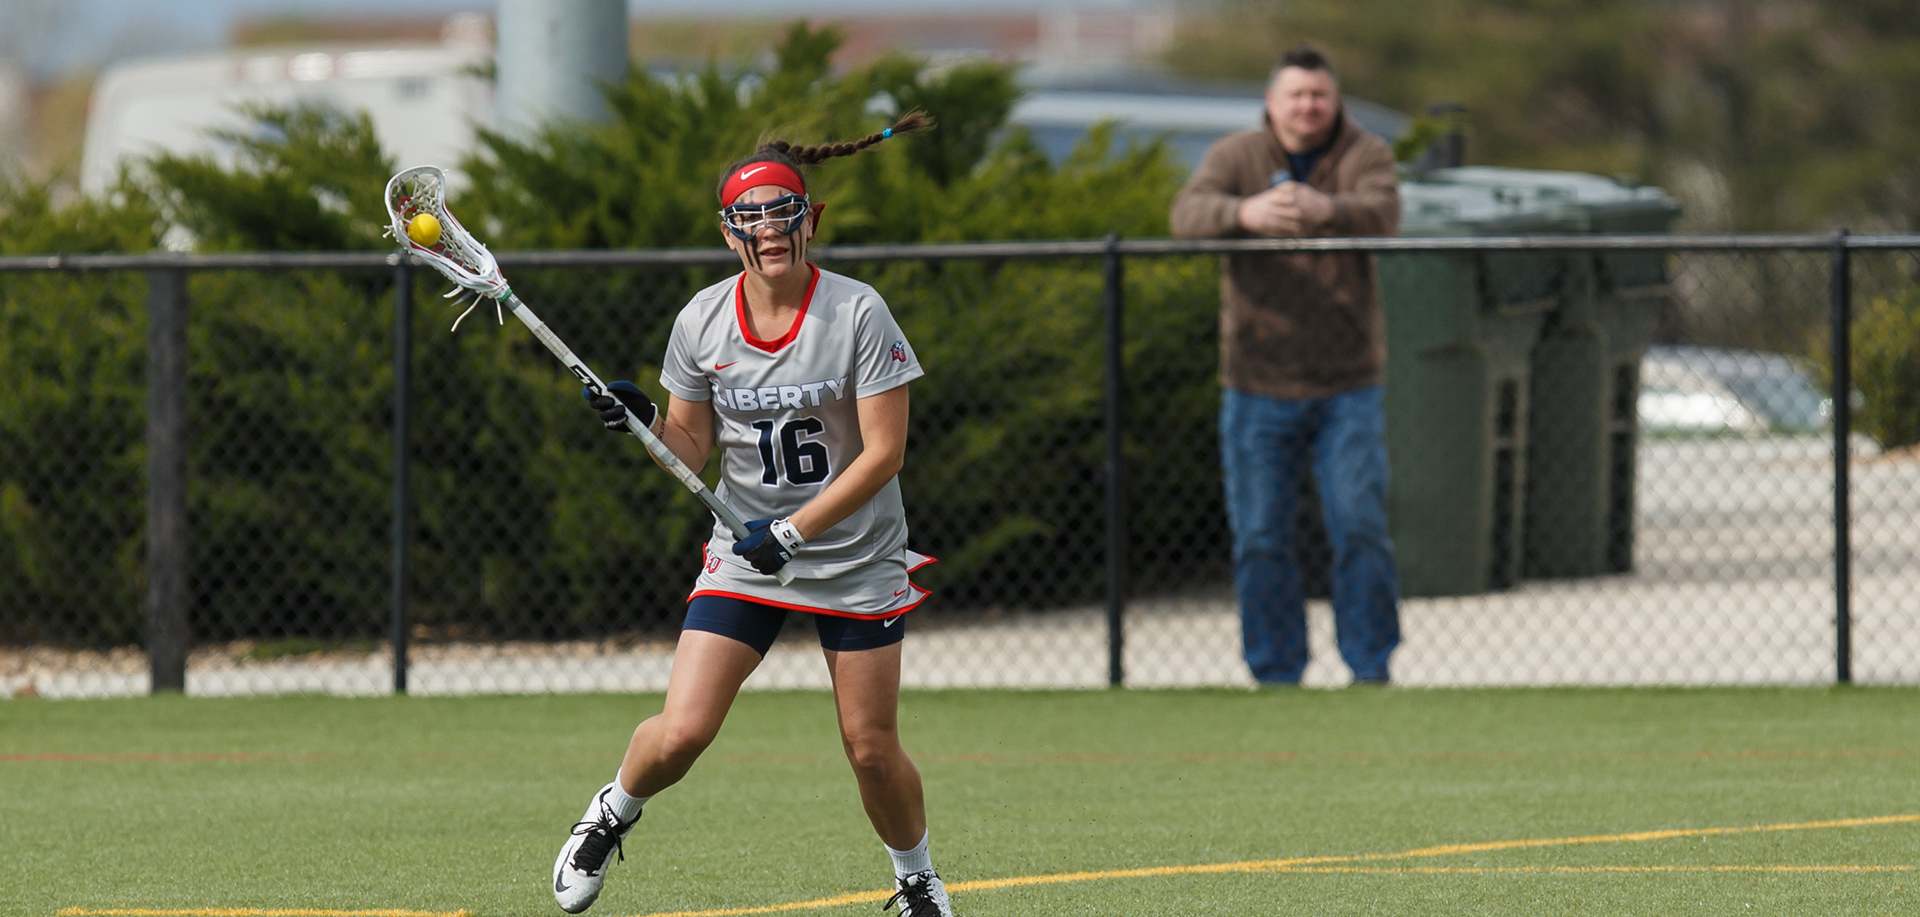 Liberty senior defender Victoria Tickle leads the squad with 28 ground balls and is 35th in the country in ground balls per game (3.11).